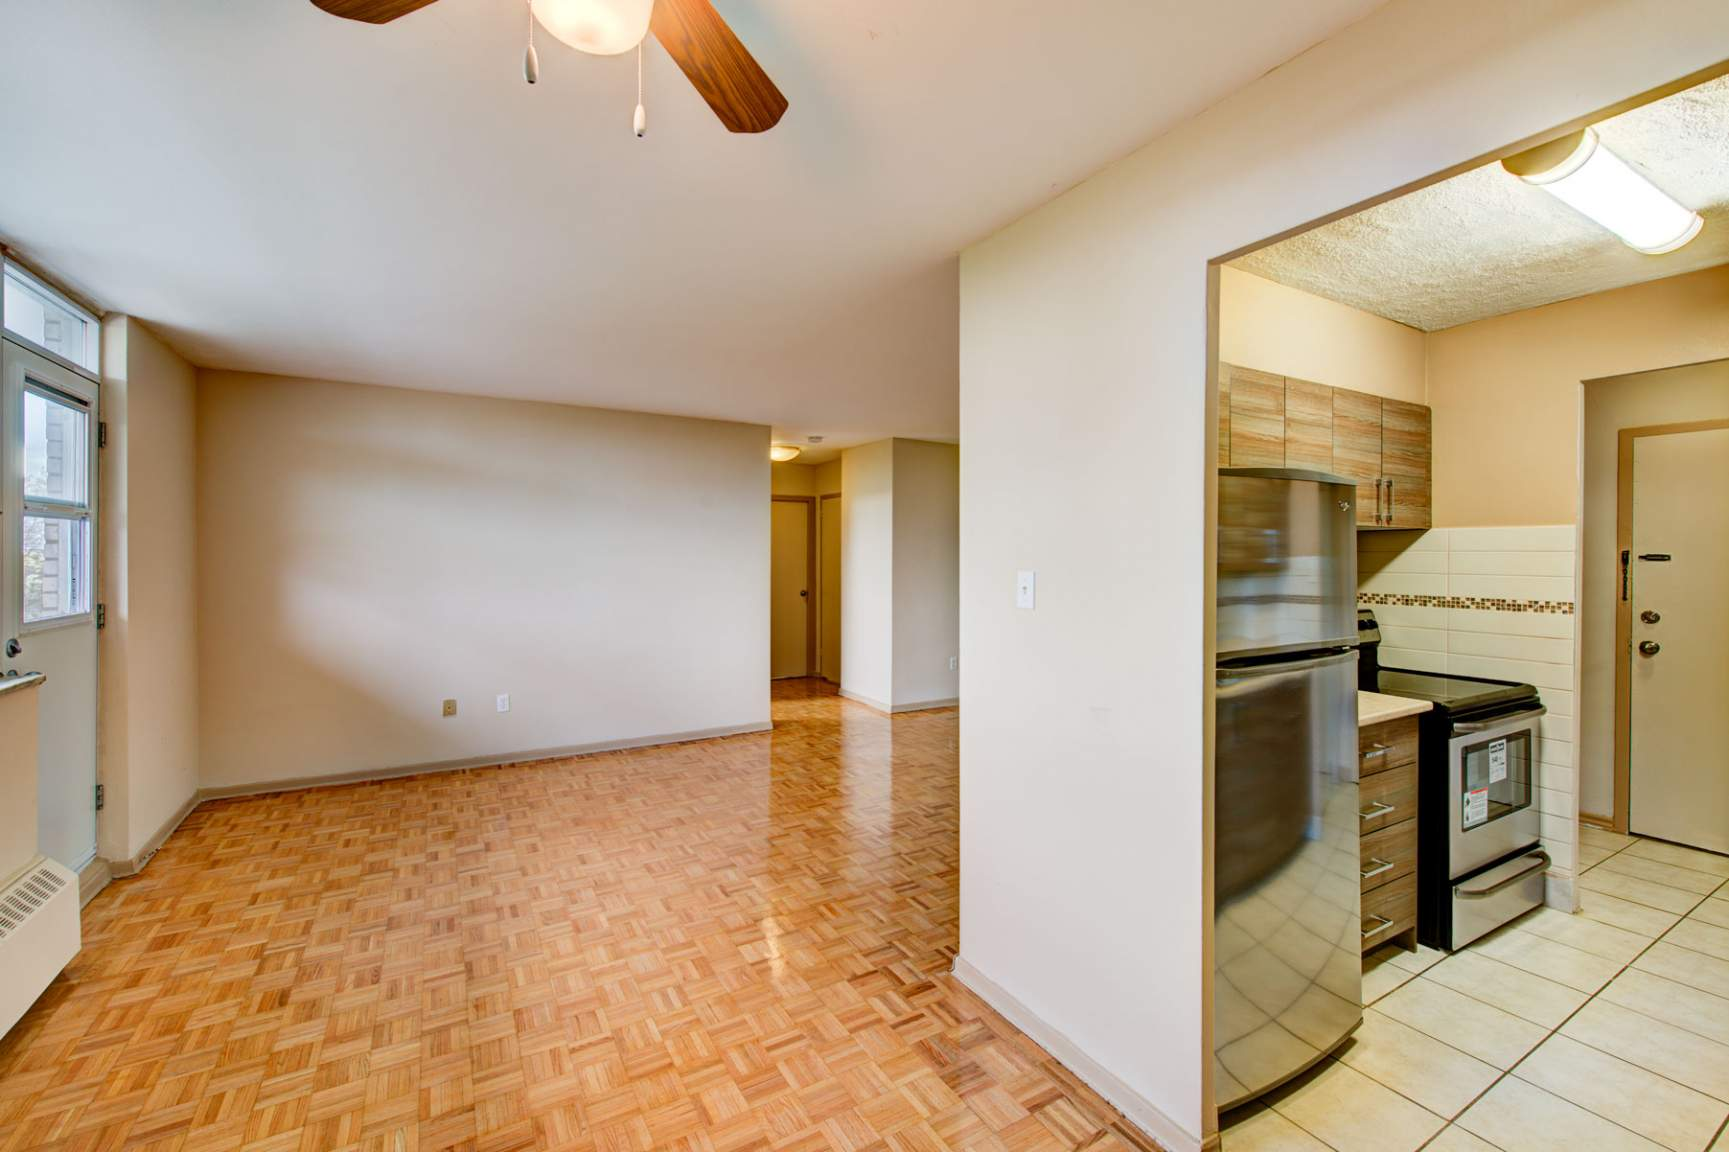 1 bedroom Apartments for rent in Mississauga at Embassy Apartments - Photo 10 - RentersPages – L138718